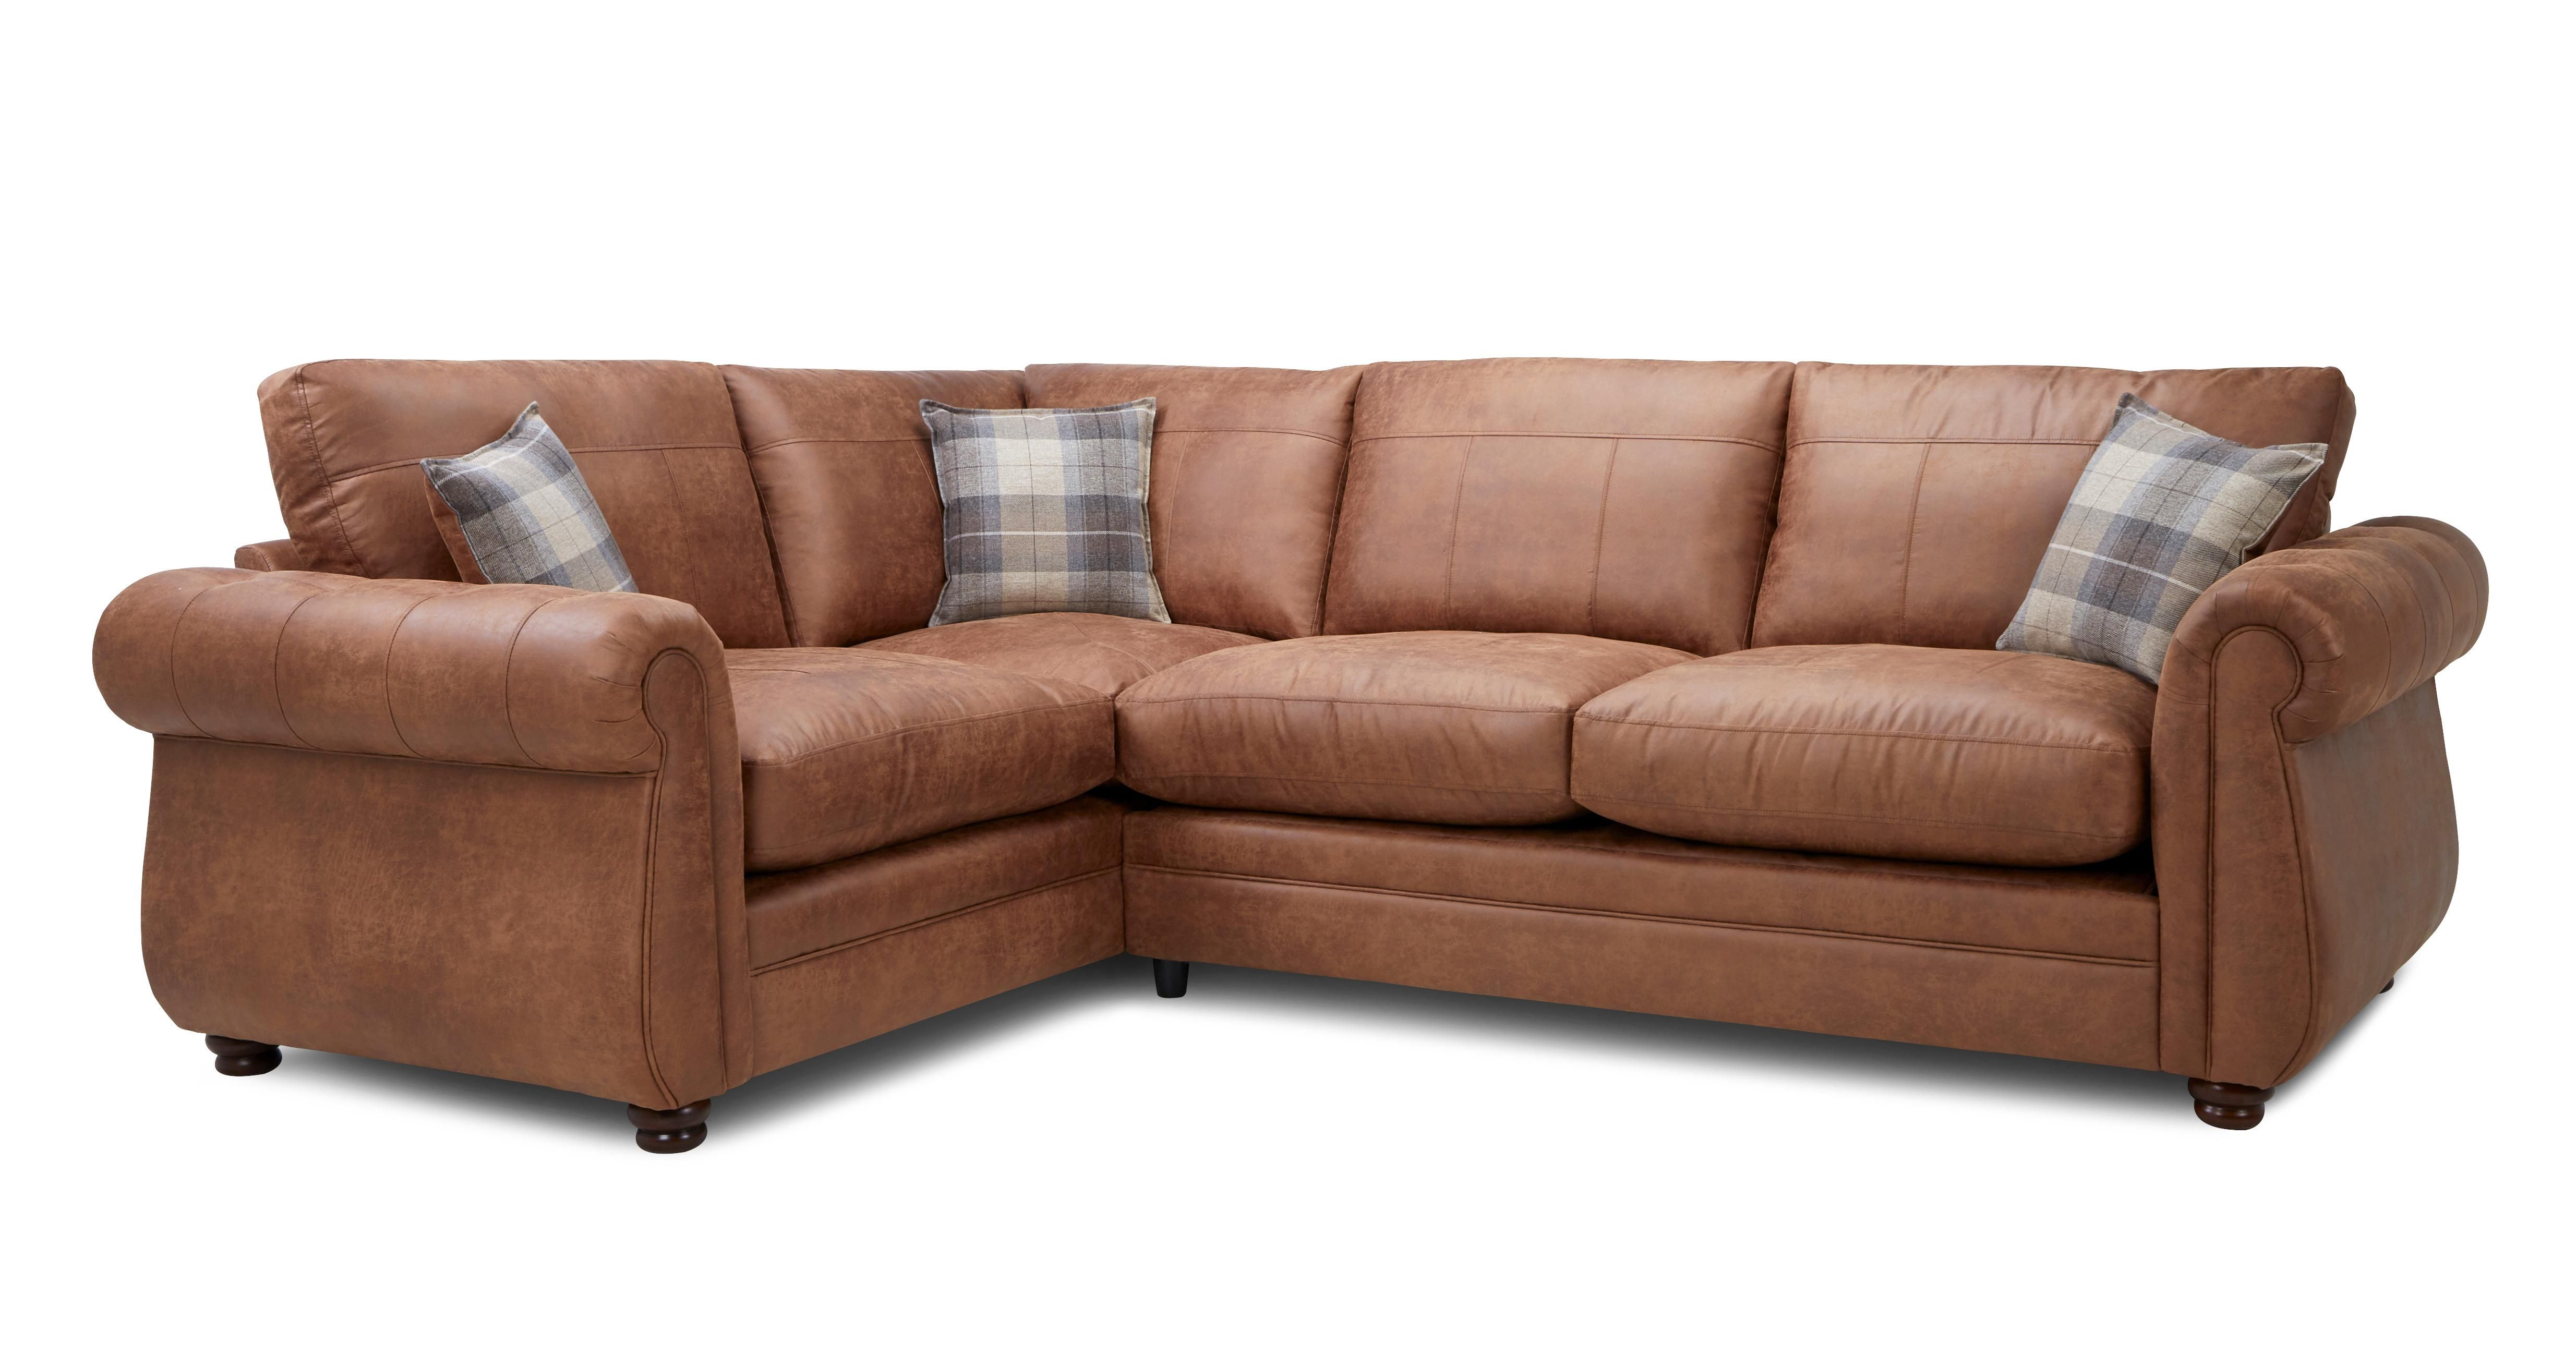 Wensley Formal Back Right Hand Facing 3 Seater Sofa Bed Corner Sofa In 2020 Sofa Corner Sofa 3 Seater Sofa Bed